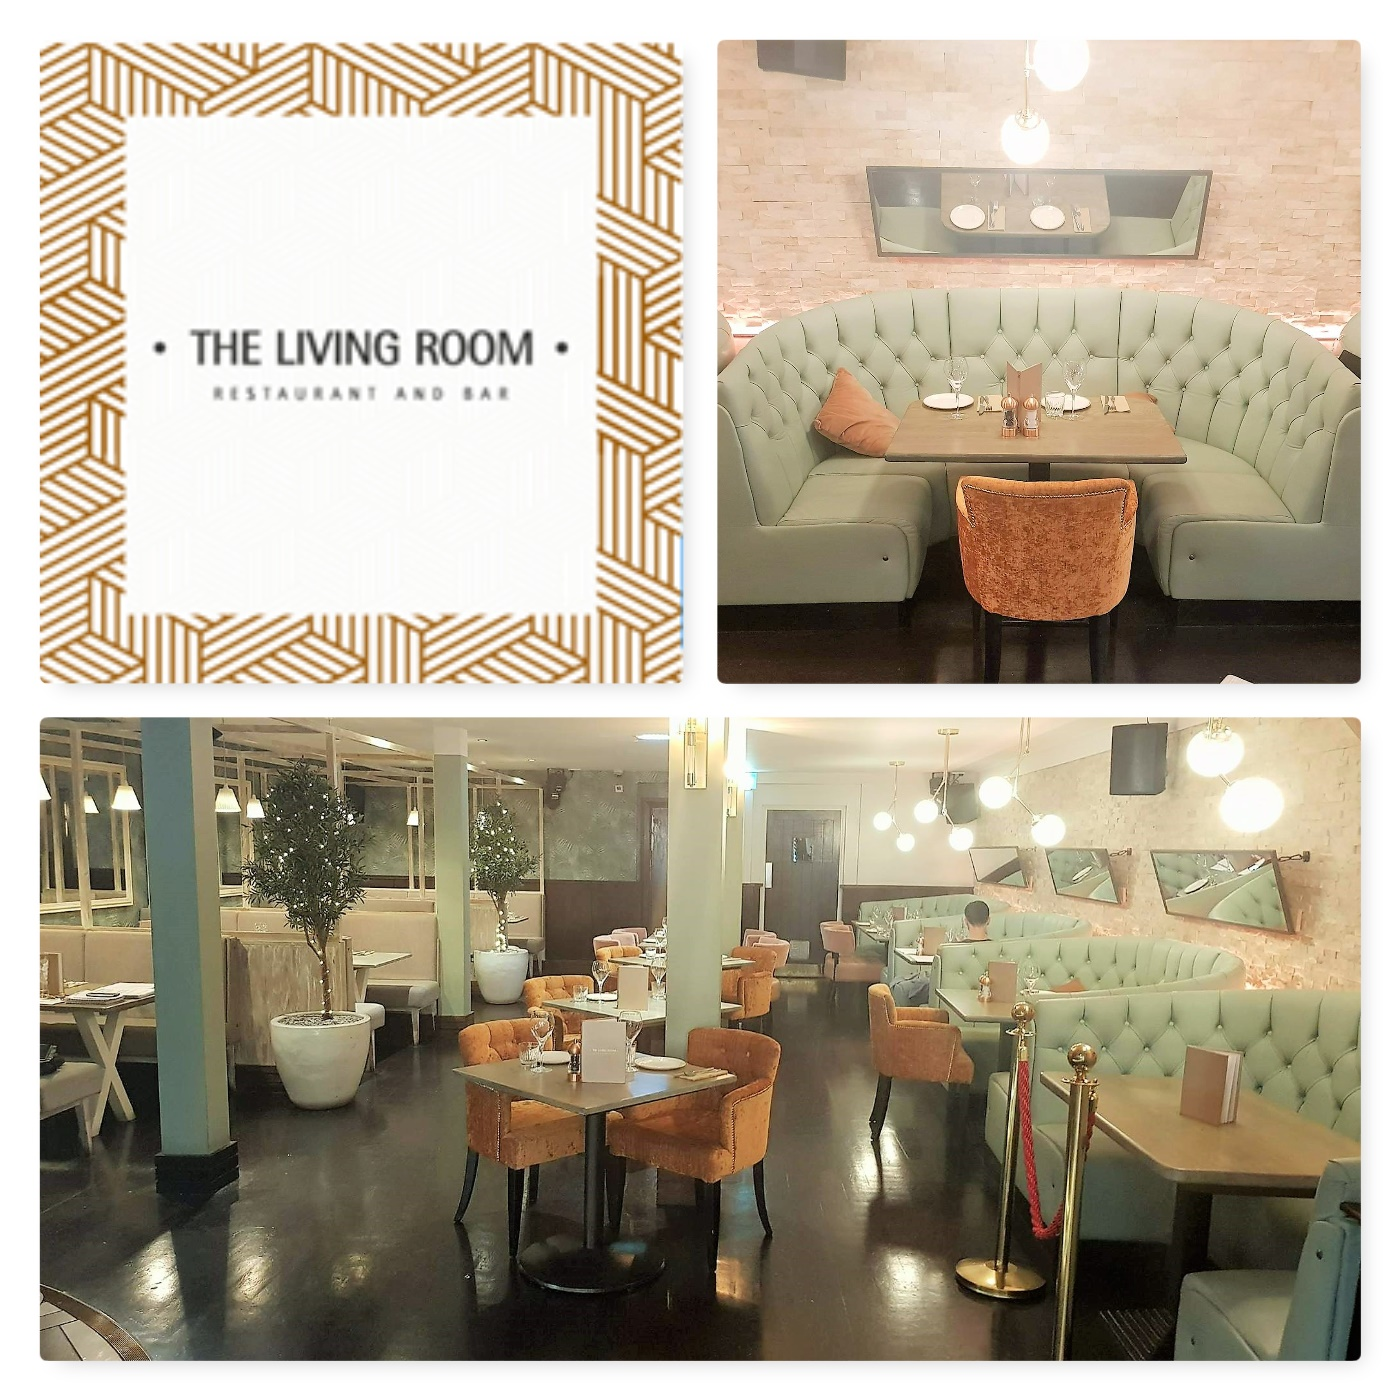 The Living Room Restaurant The Living Room Restaurant And Bar Manchester Review